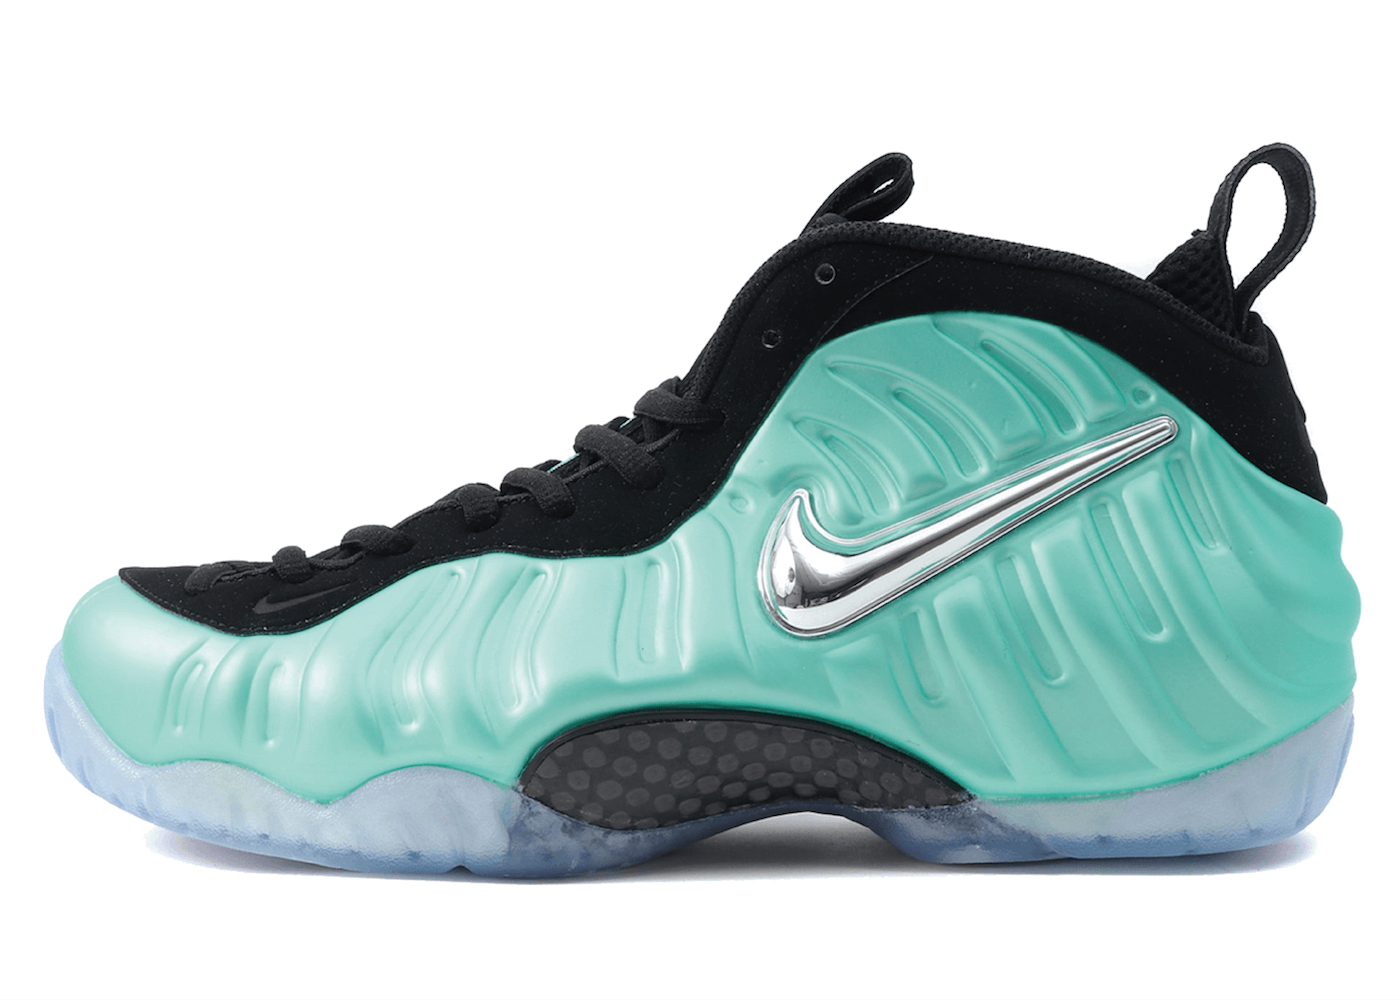 Air Nike Foamposite Pro Island Greenの写真